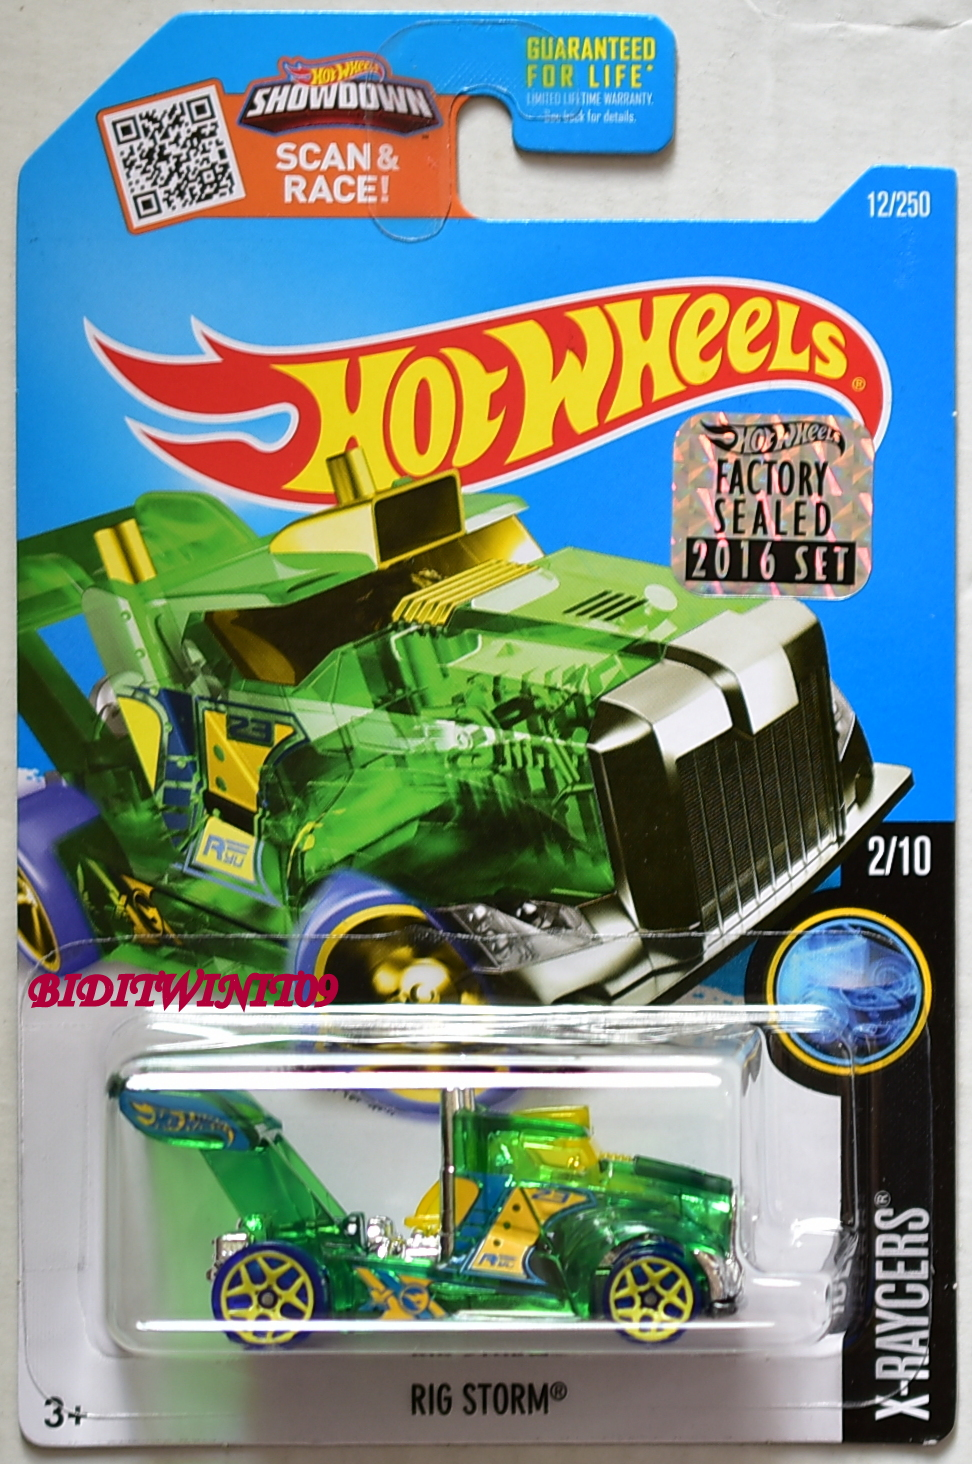 HOT WHEELS 2016 X-RAYCERS RIG STORM GREEN FACTORY SEALED